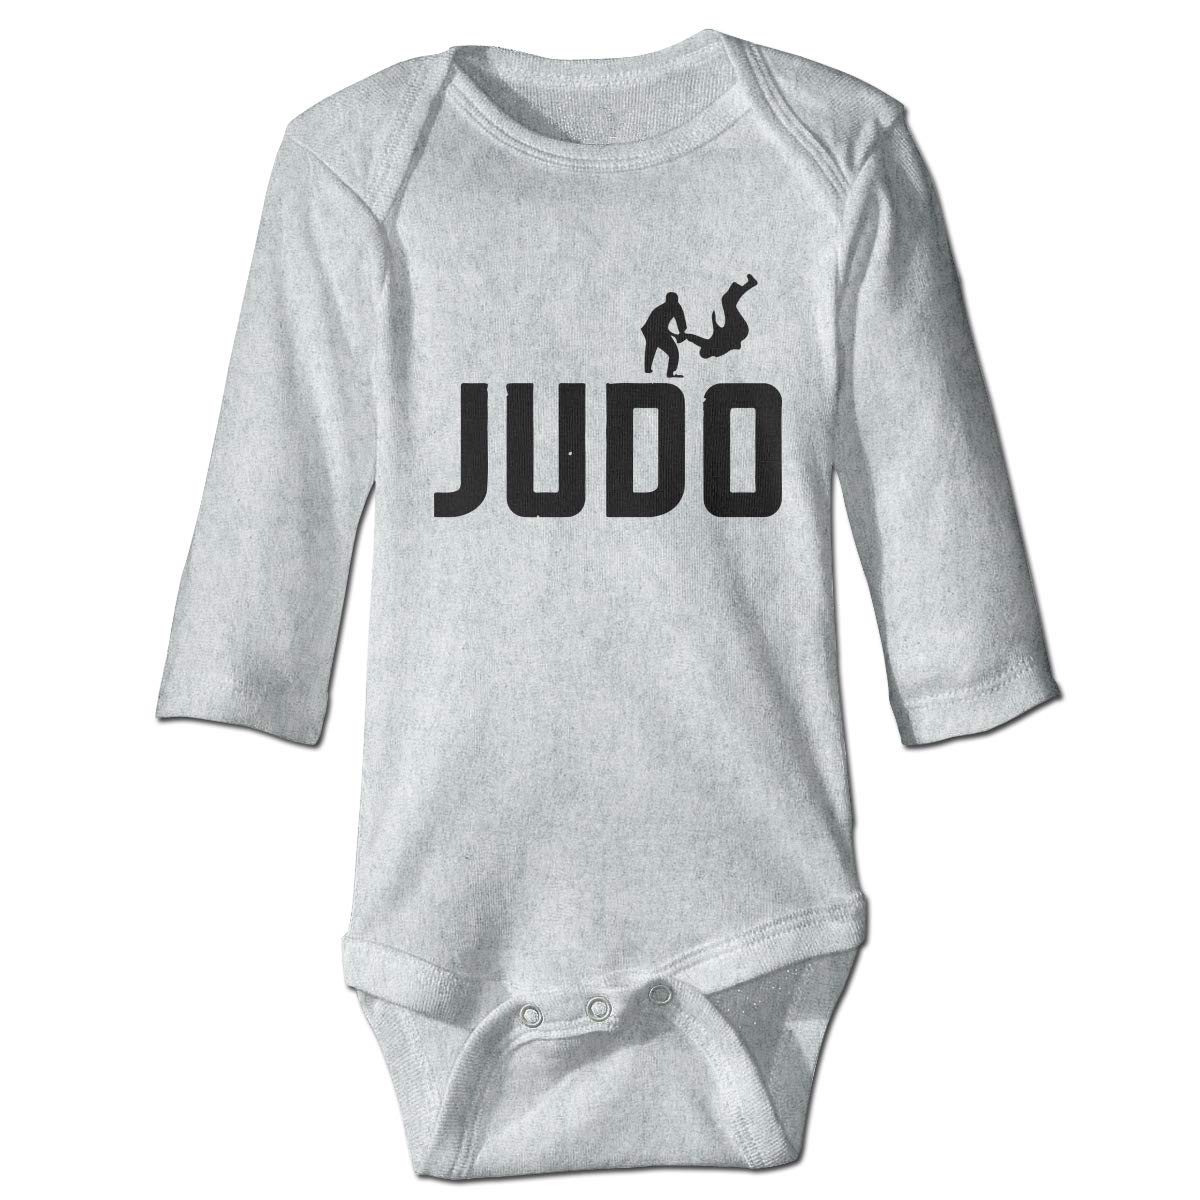 A14UBP Newborn Baby Boys Girls Long Sleeve Romper Bodysuit Judo Fighter-1 Unisex Button Playsuit Outfit Clothes